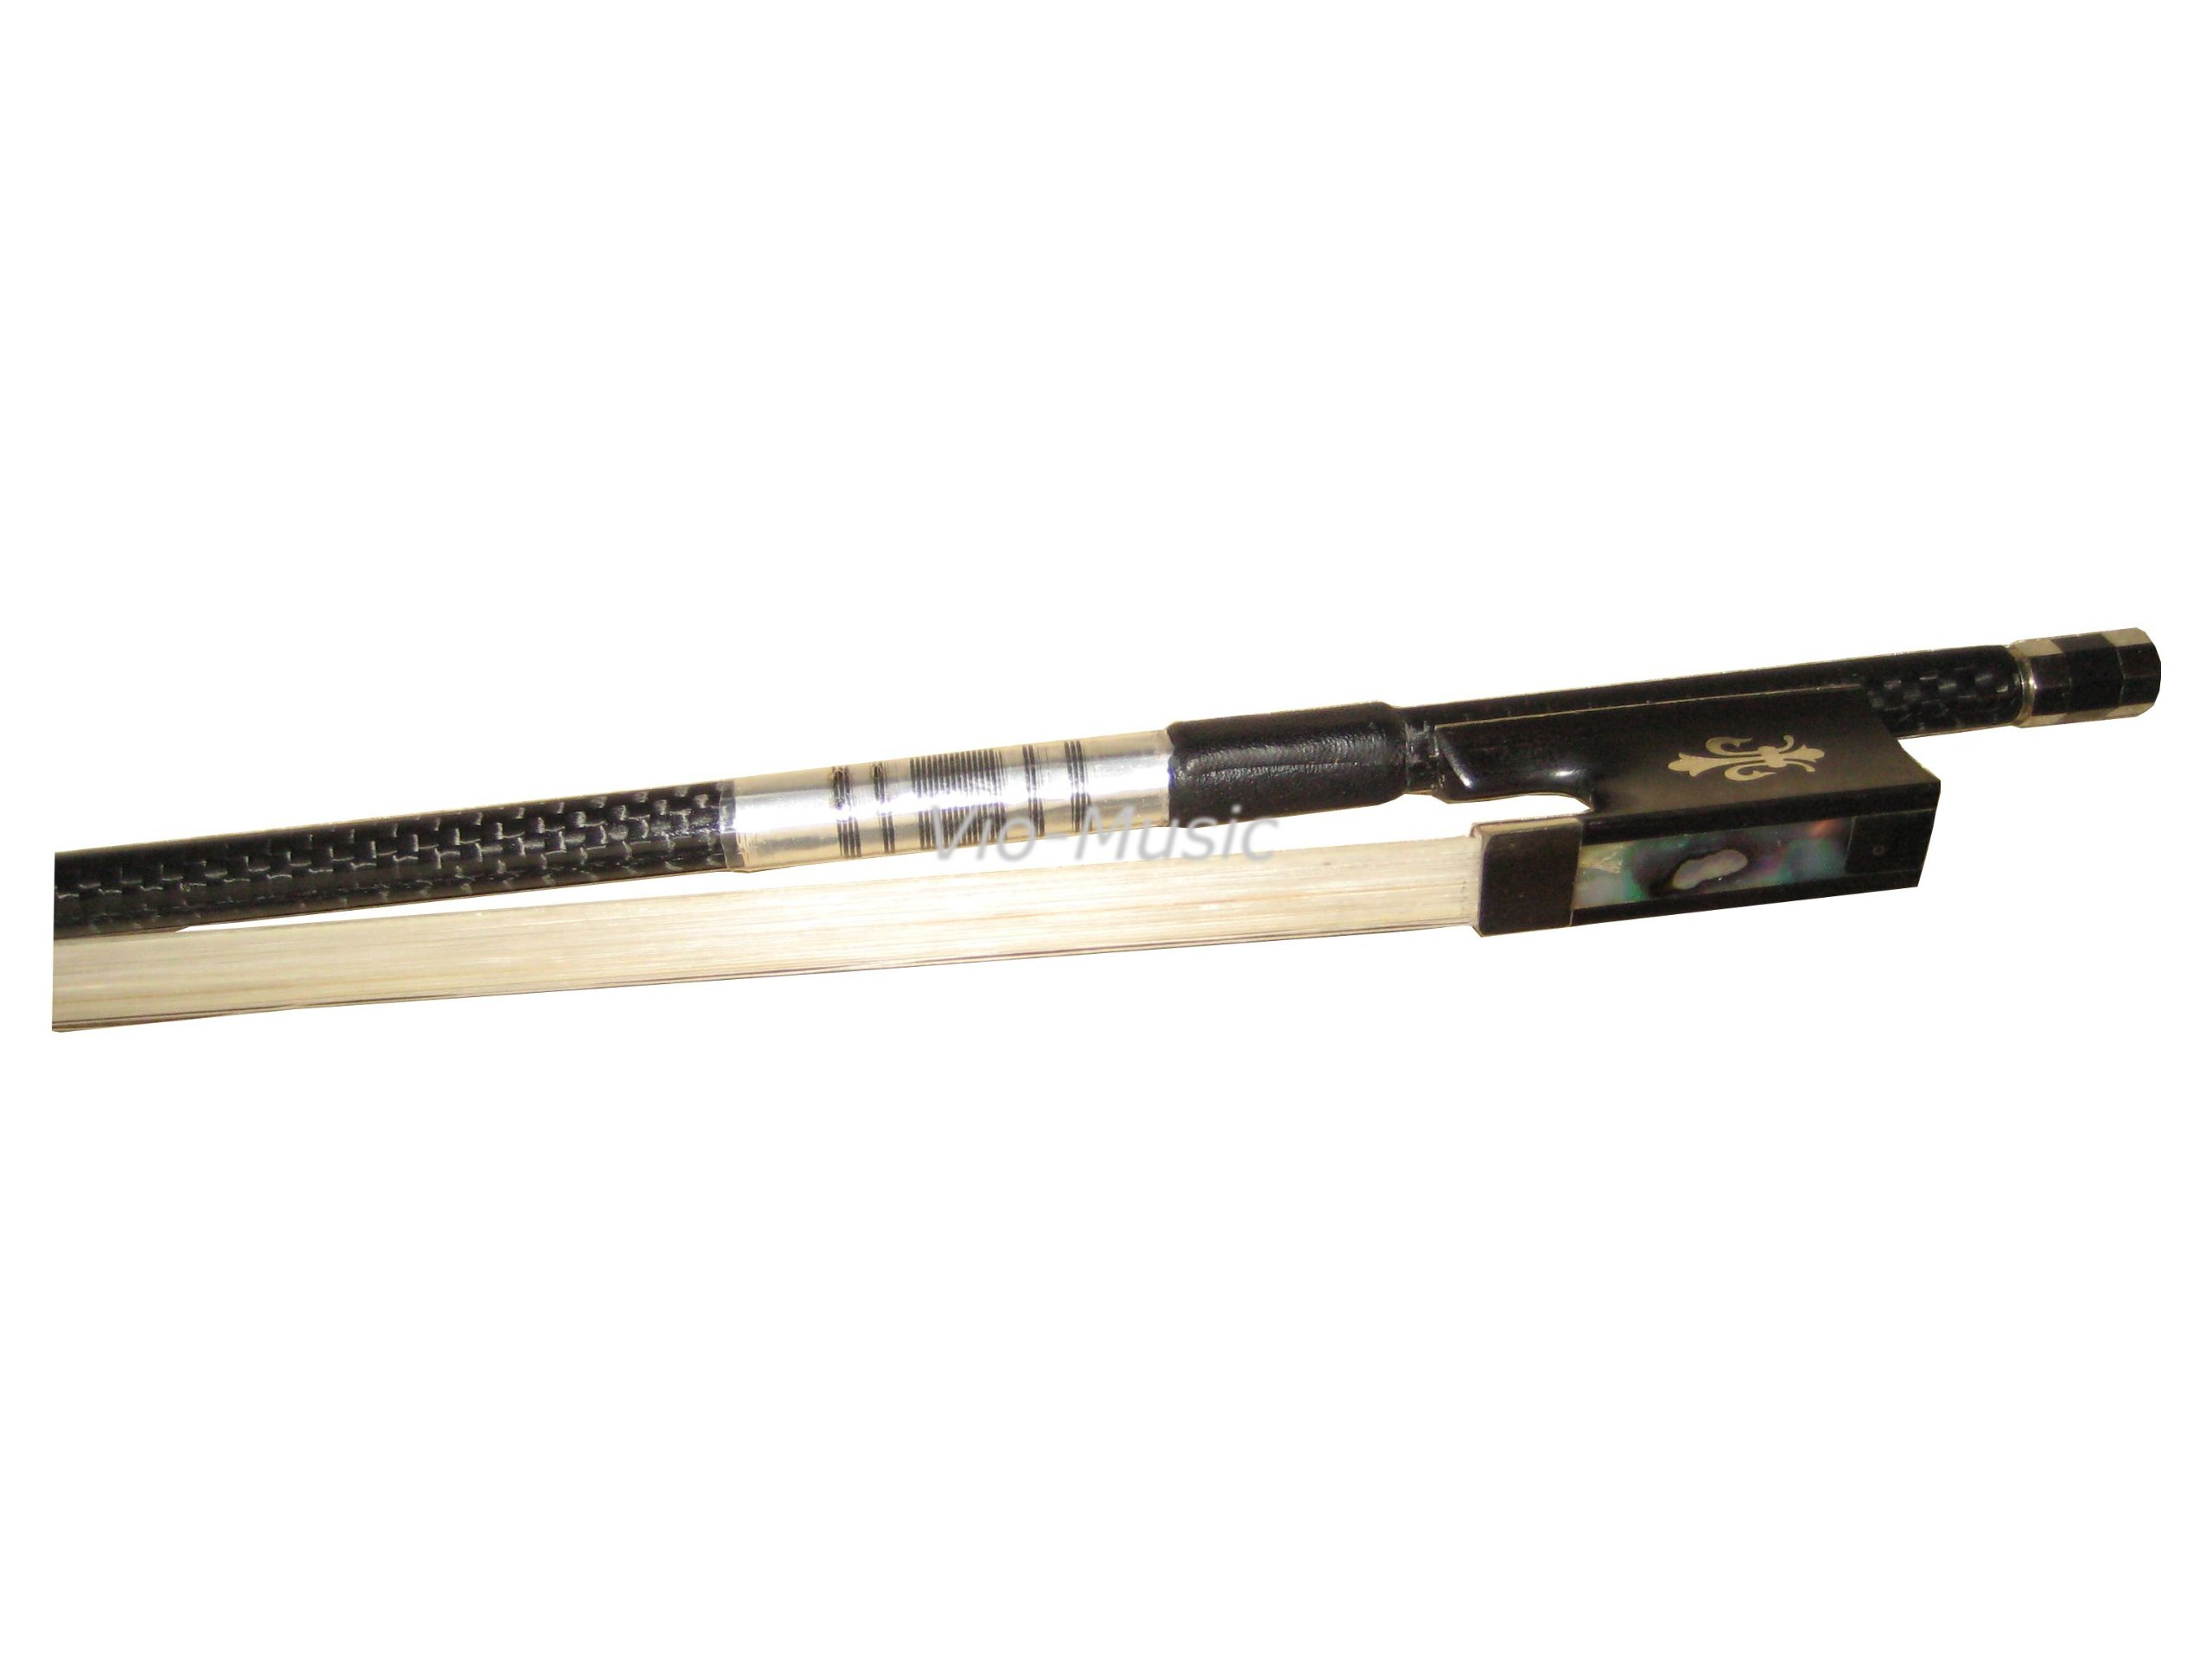 Top Braided Carbon Fiber Violin Bow 4/4, Fluer-de-lys Inlay Ebony Frog by Vio Music (Image #6)